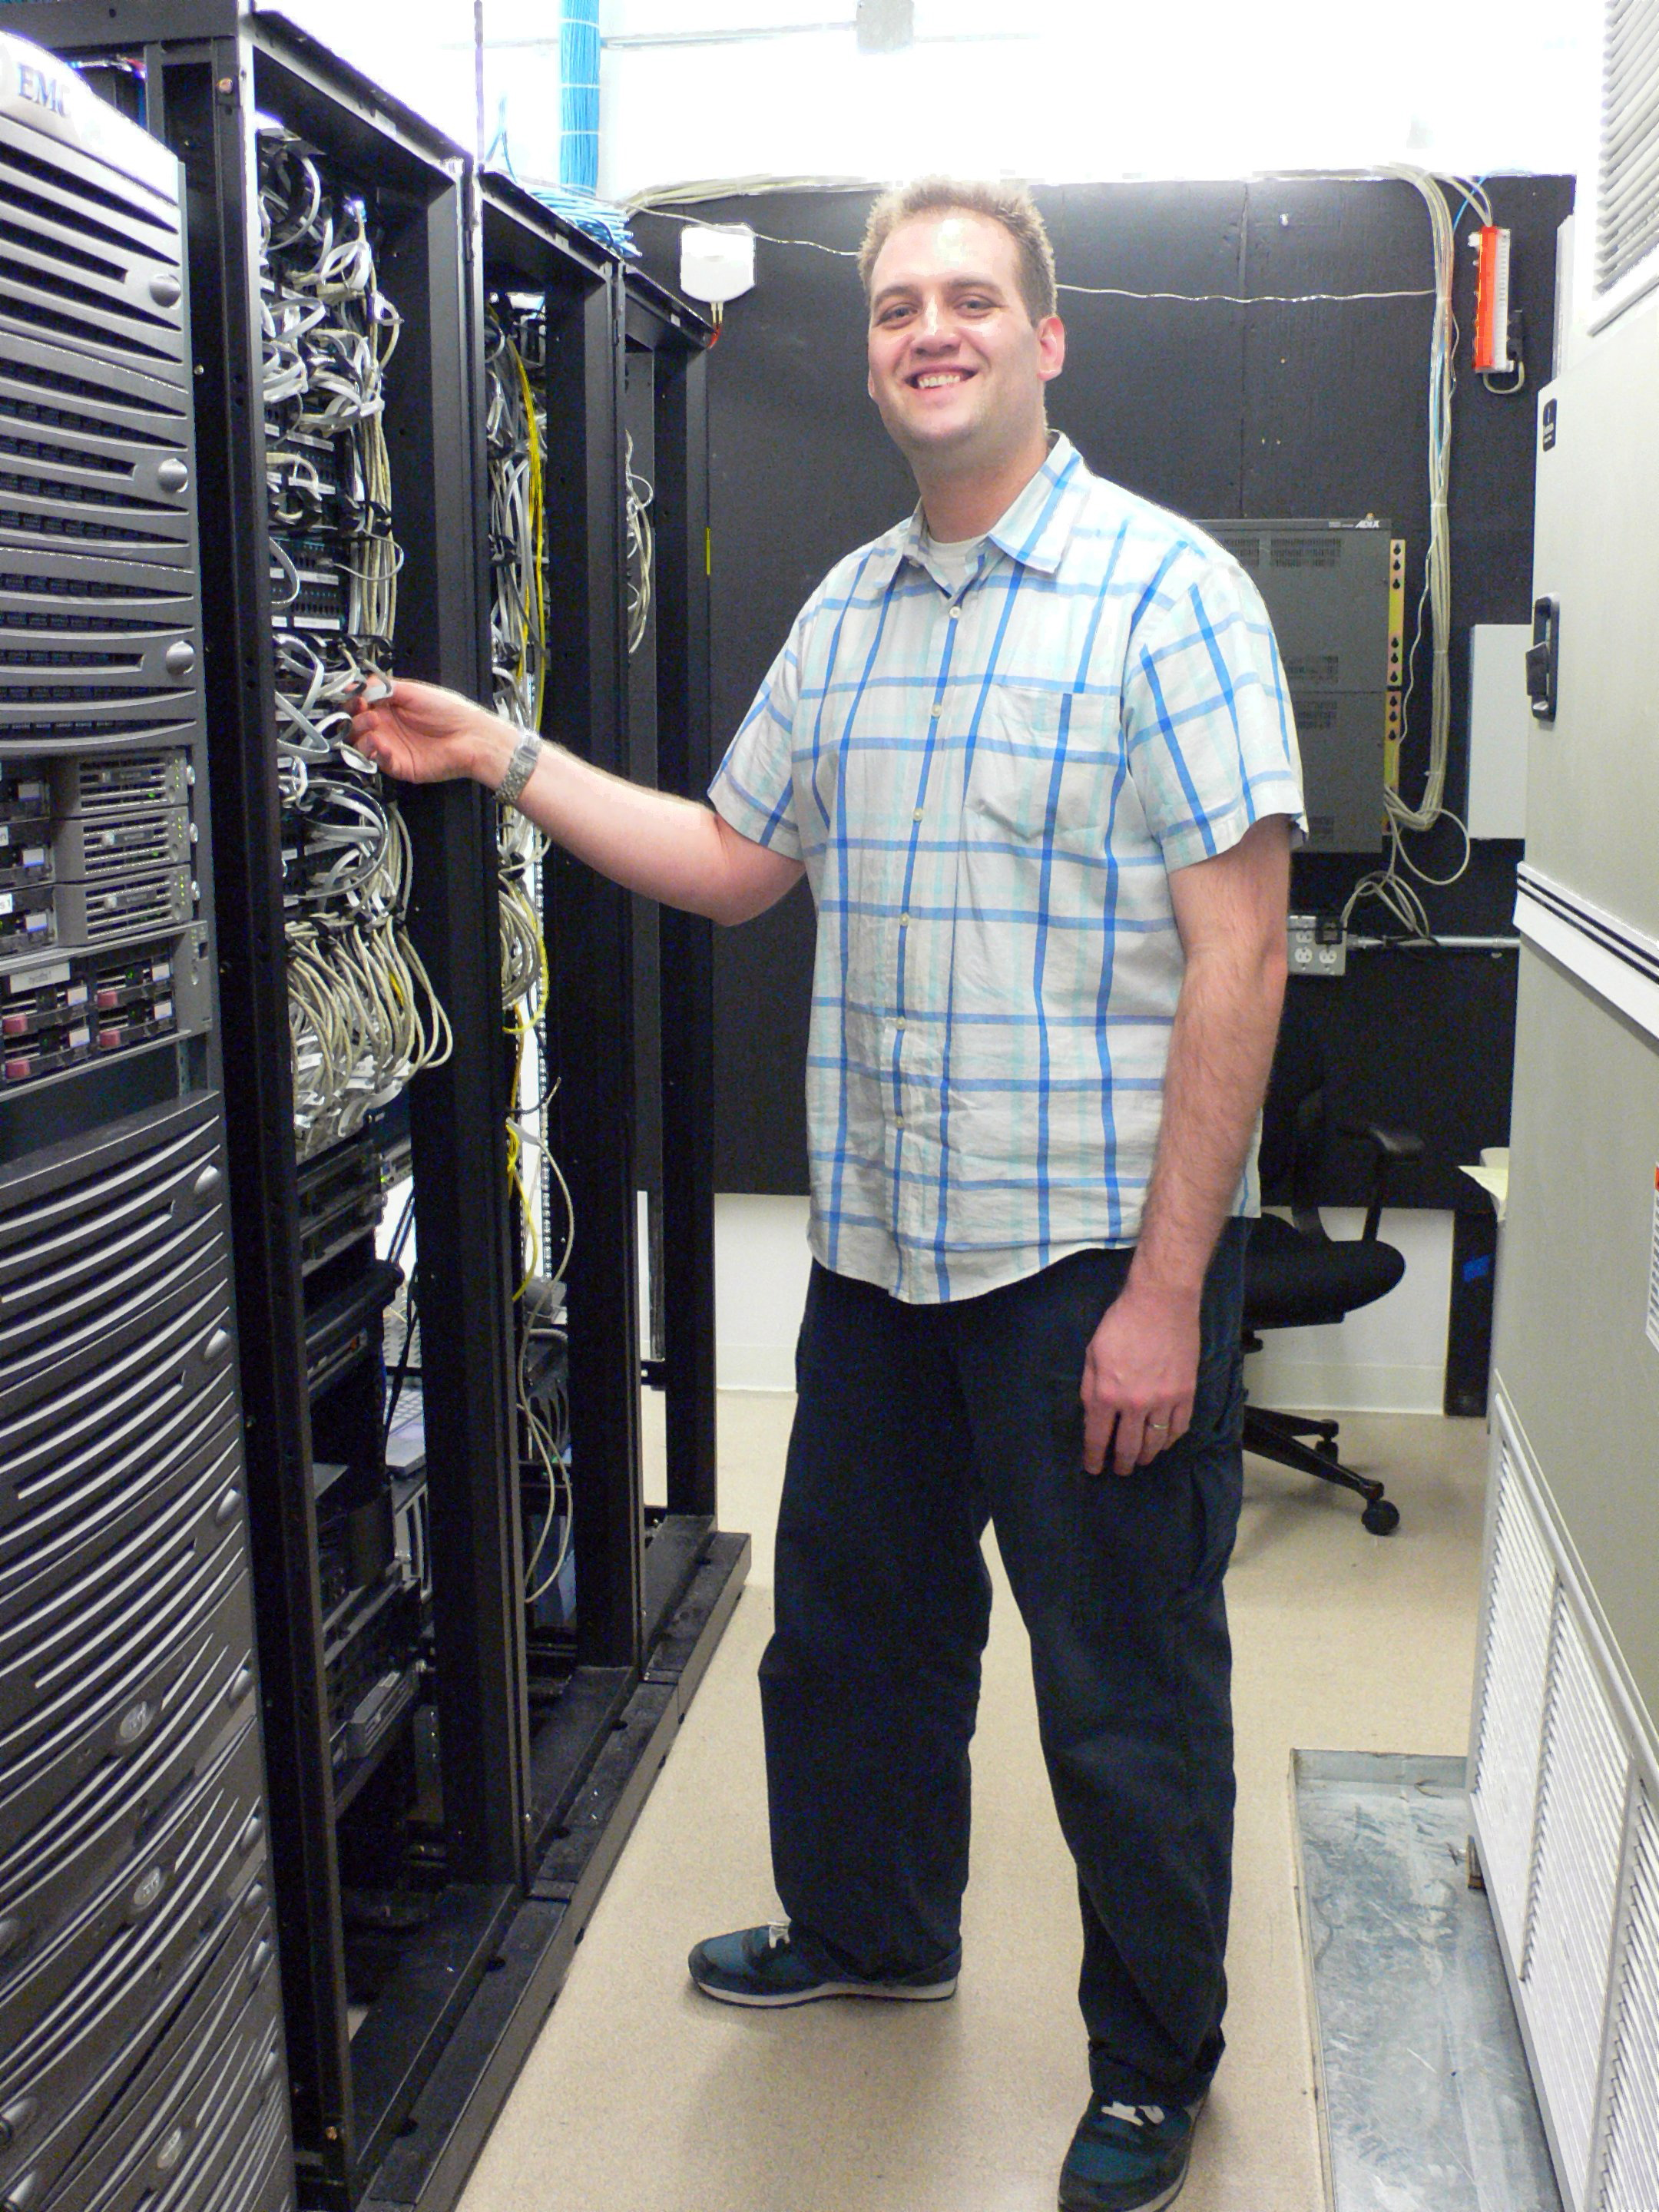 network system administrator Search careerbuilder for network administrator jobs and browse our platform apply now for jobs that are hiring near you.